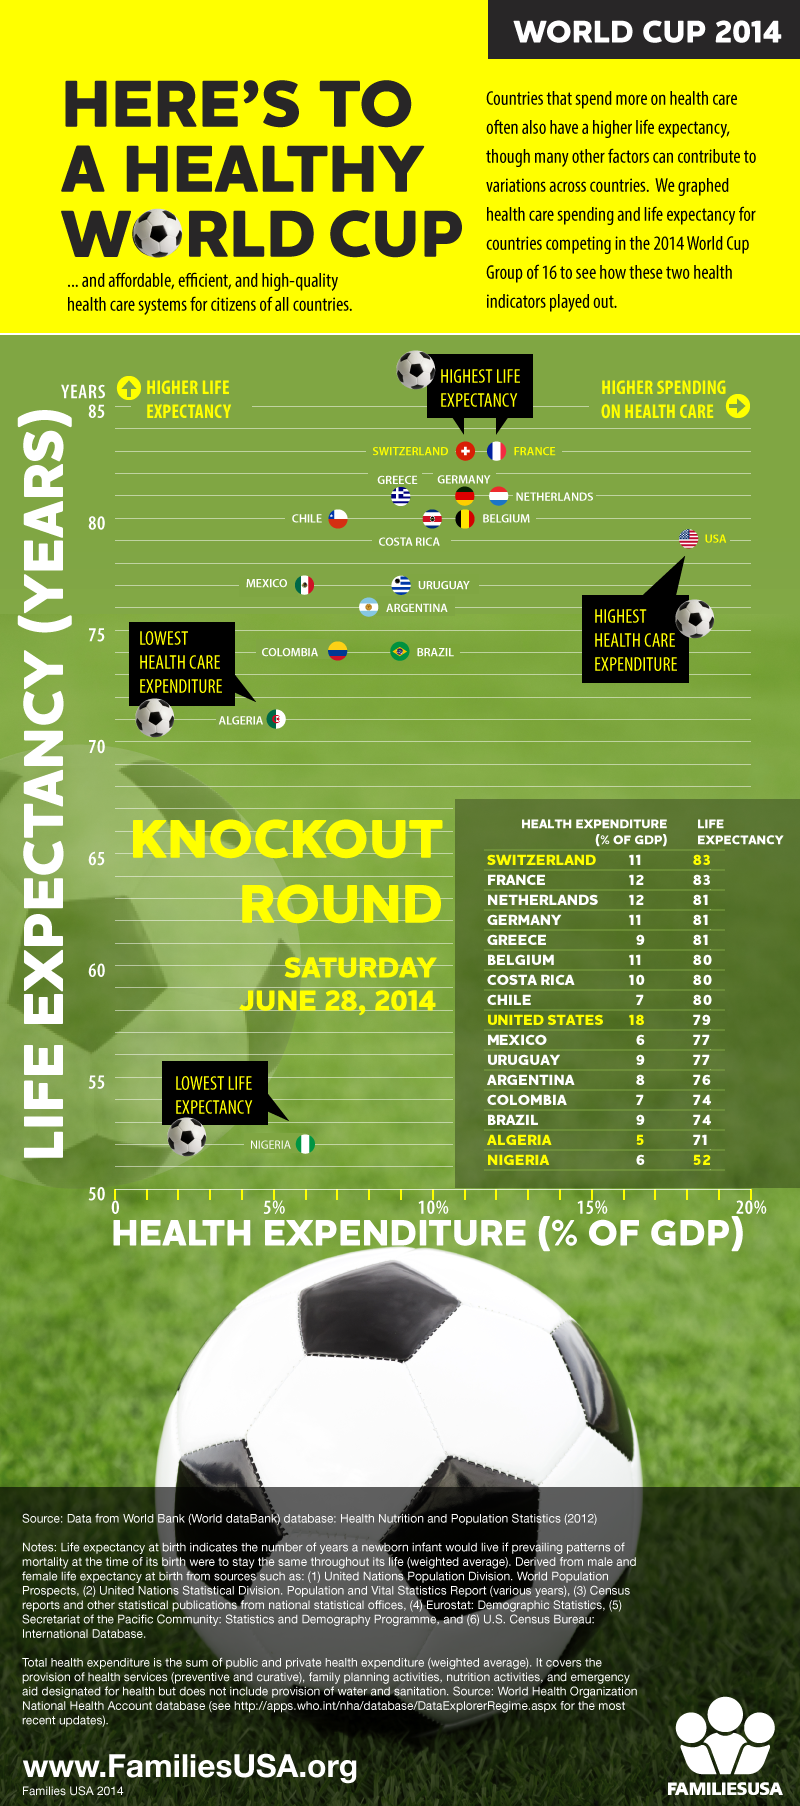 https://familiesusa.org/wp-content/uploads/2014/06/FamiliesUSA_WorldCup2014_Infographic_0.png